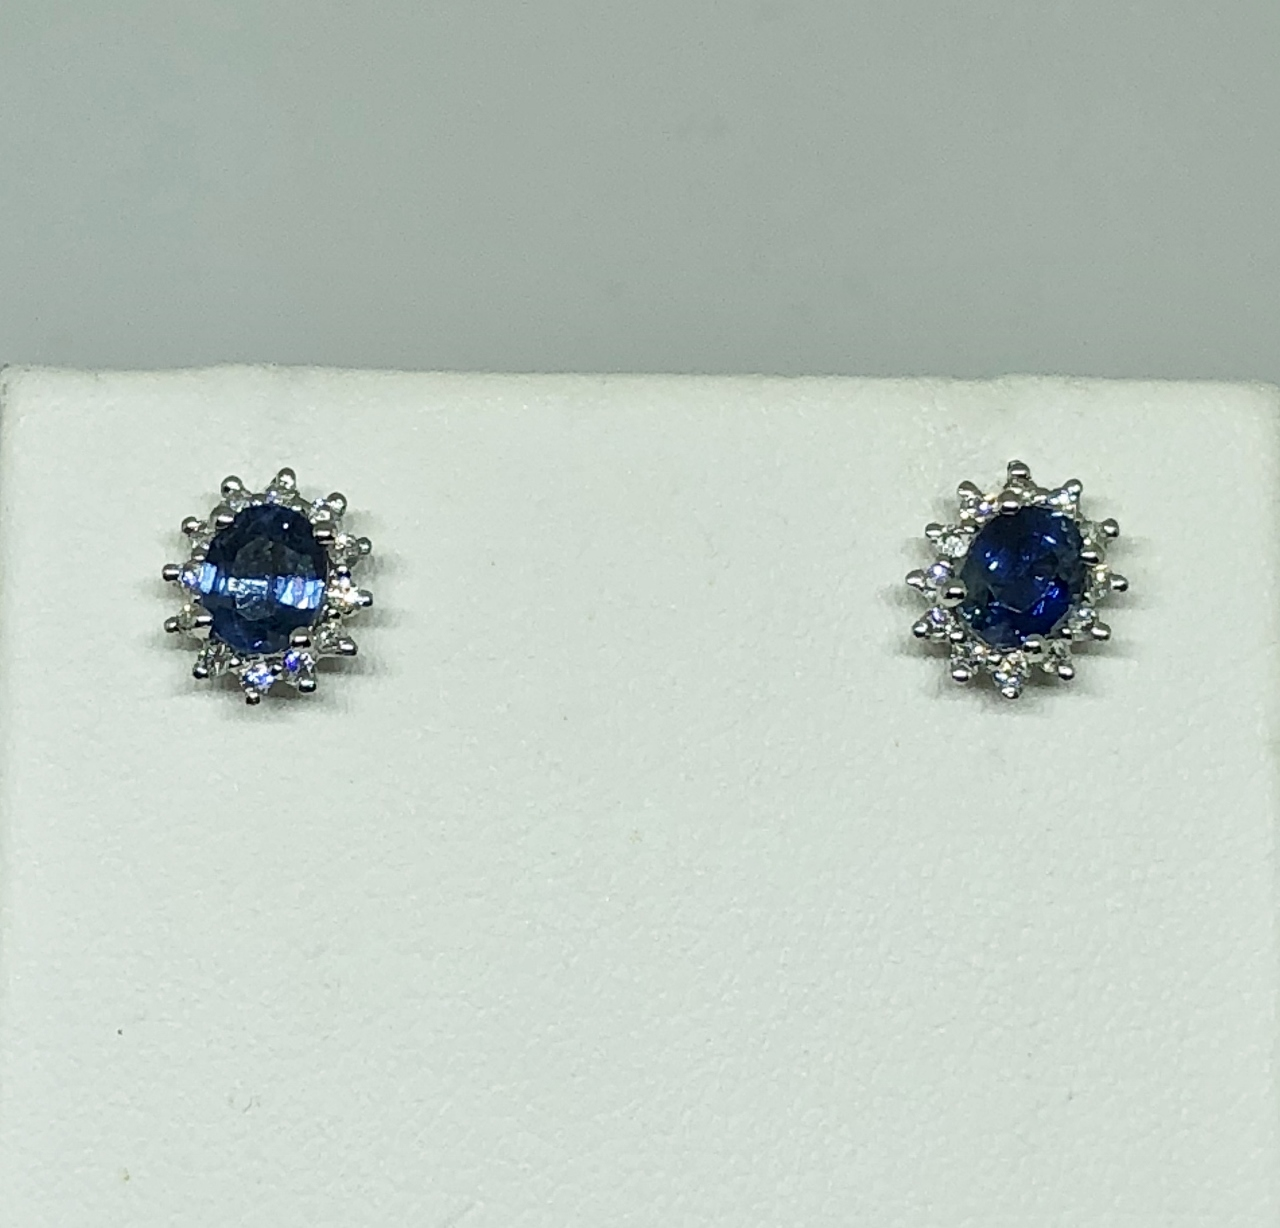 Almost 1 Carat Total Weight Sapphire Diamond Earrings